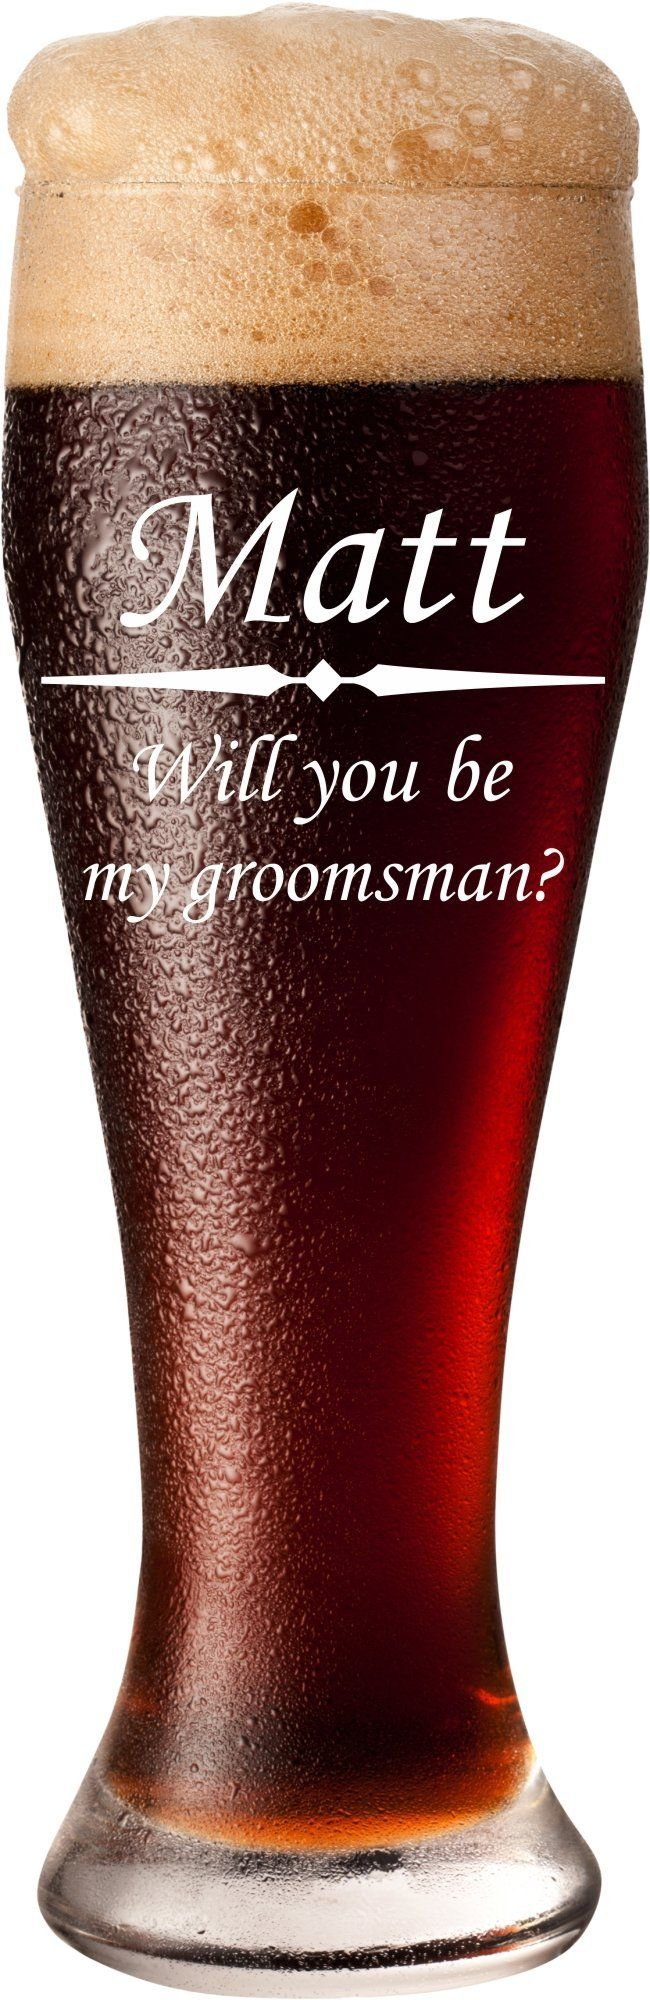 Will You Be My Groomsman? Personalized Pilsner Glass - Groomsmen Gift Glasses, Best Man Gift, Usher Gift, - PLG01. This pilsner glass will be personalized with up to three lines of your custom text in your choice of fonts. Our specialized engraving process permanently marks the glass, so it requires no maintenance, will last forever, and is dishwasher safe! ...Item Details... ~ Made in America from durable, heavy duty glass ~ Choose from a standard 16 oz or large 23 oz pilsner glass from…